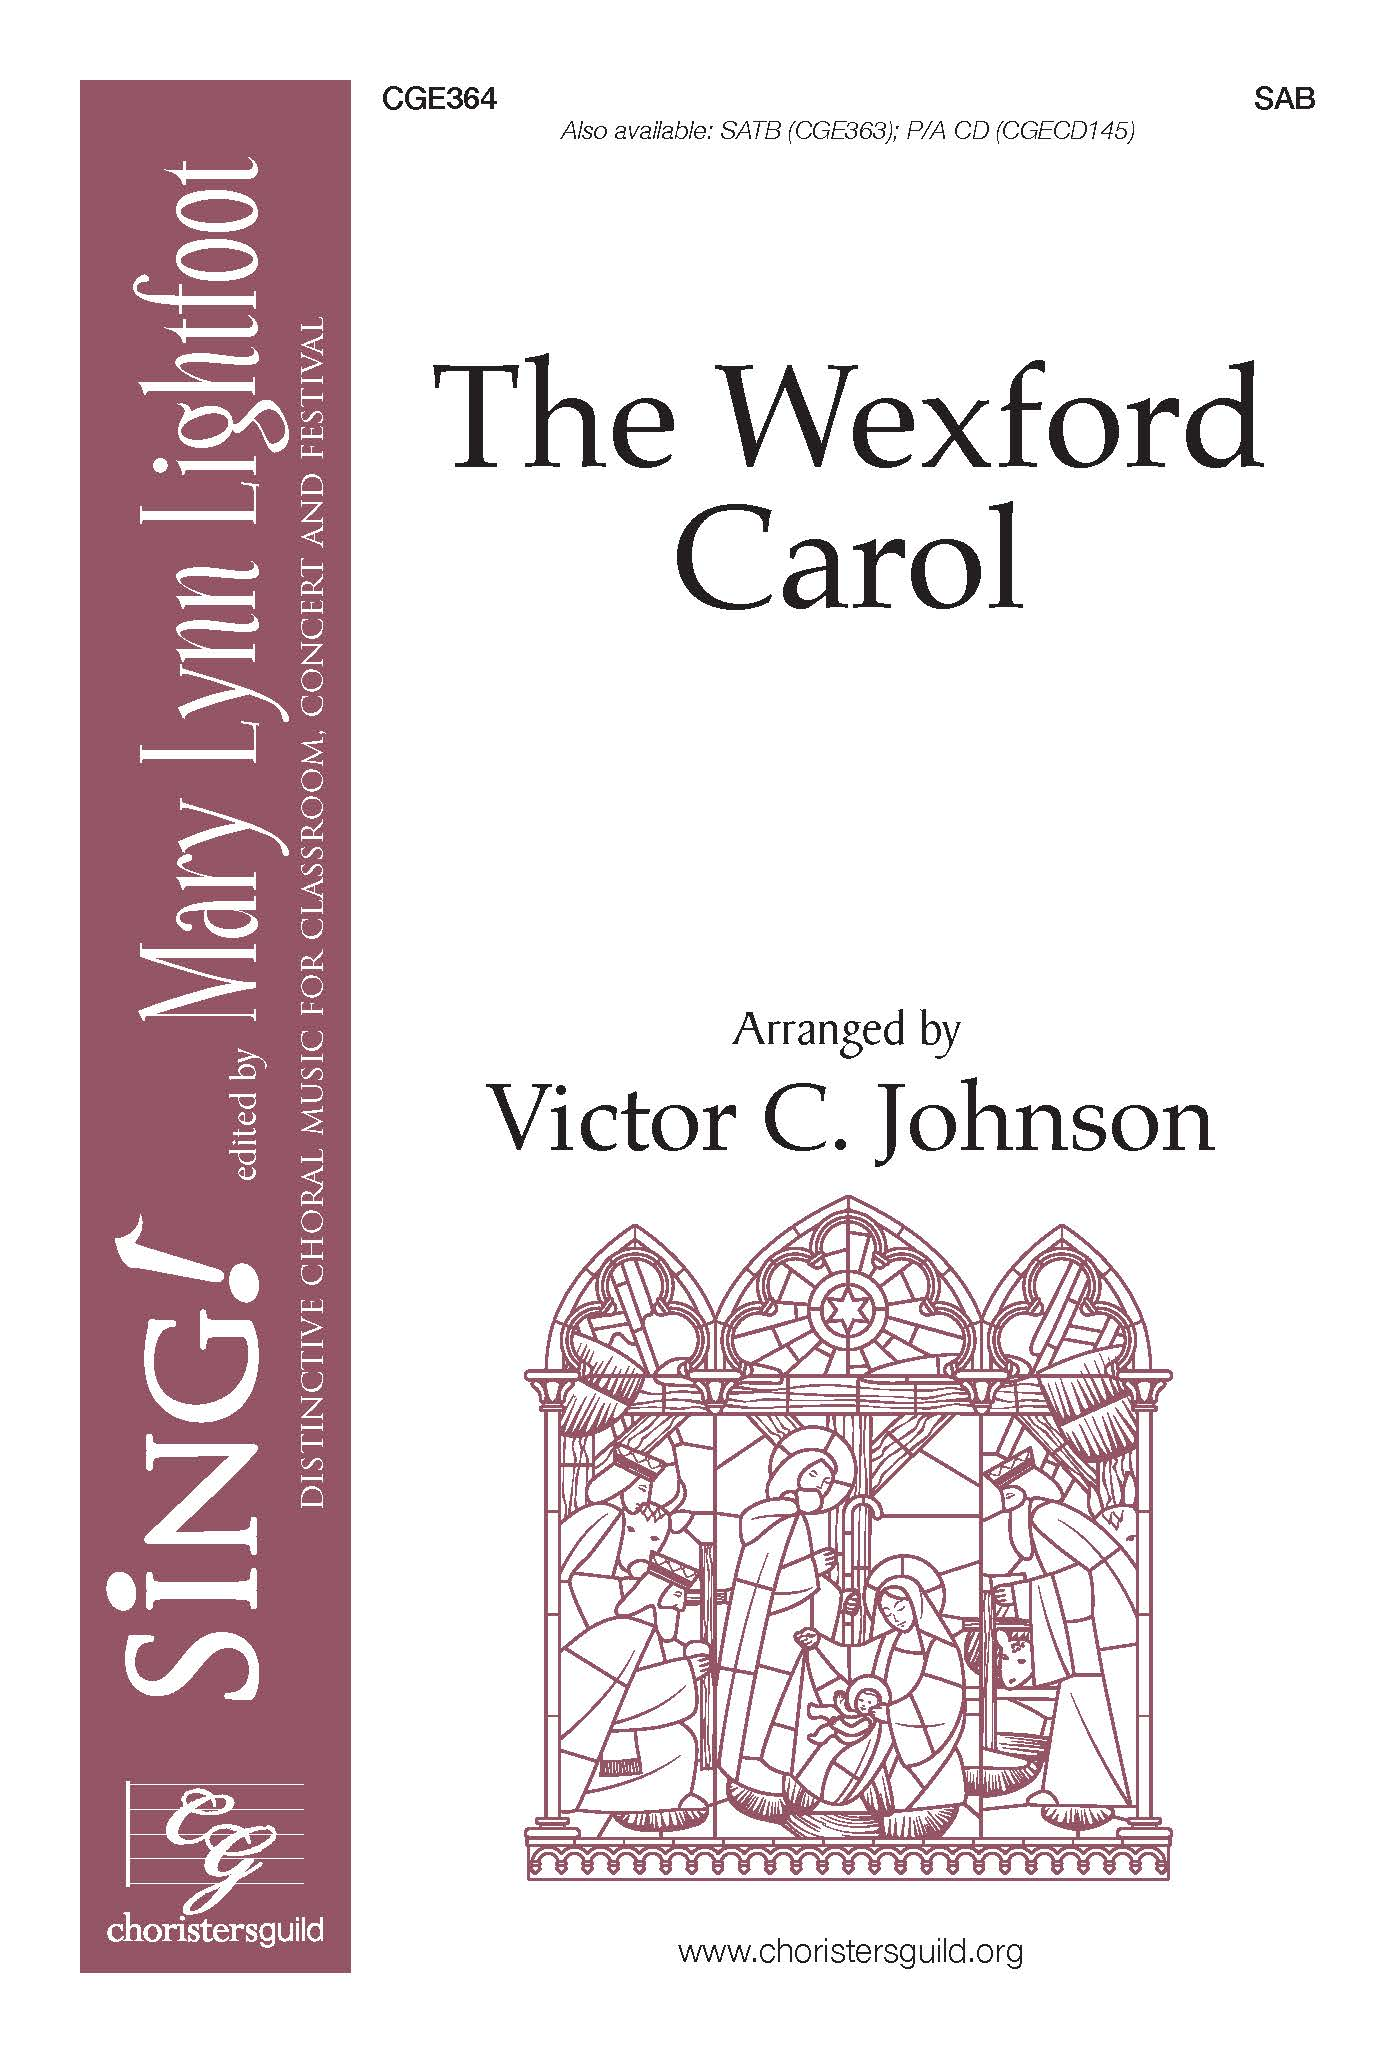 The Wexford Carol - SAB